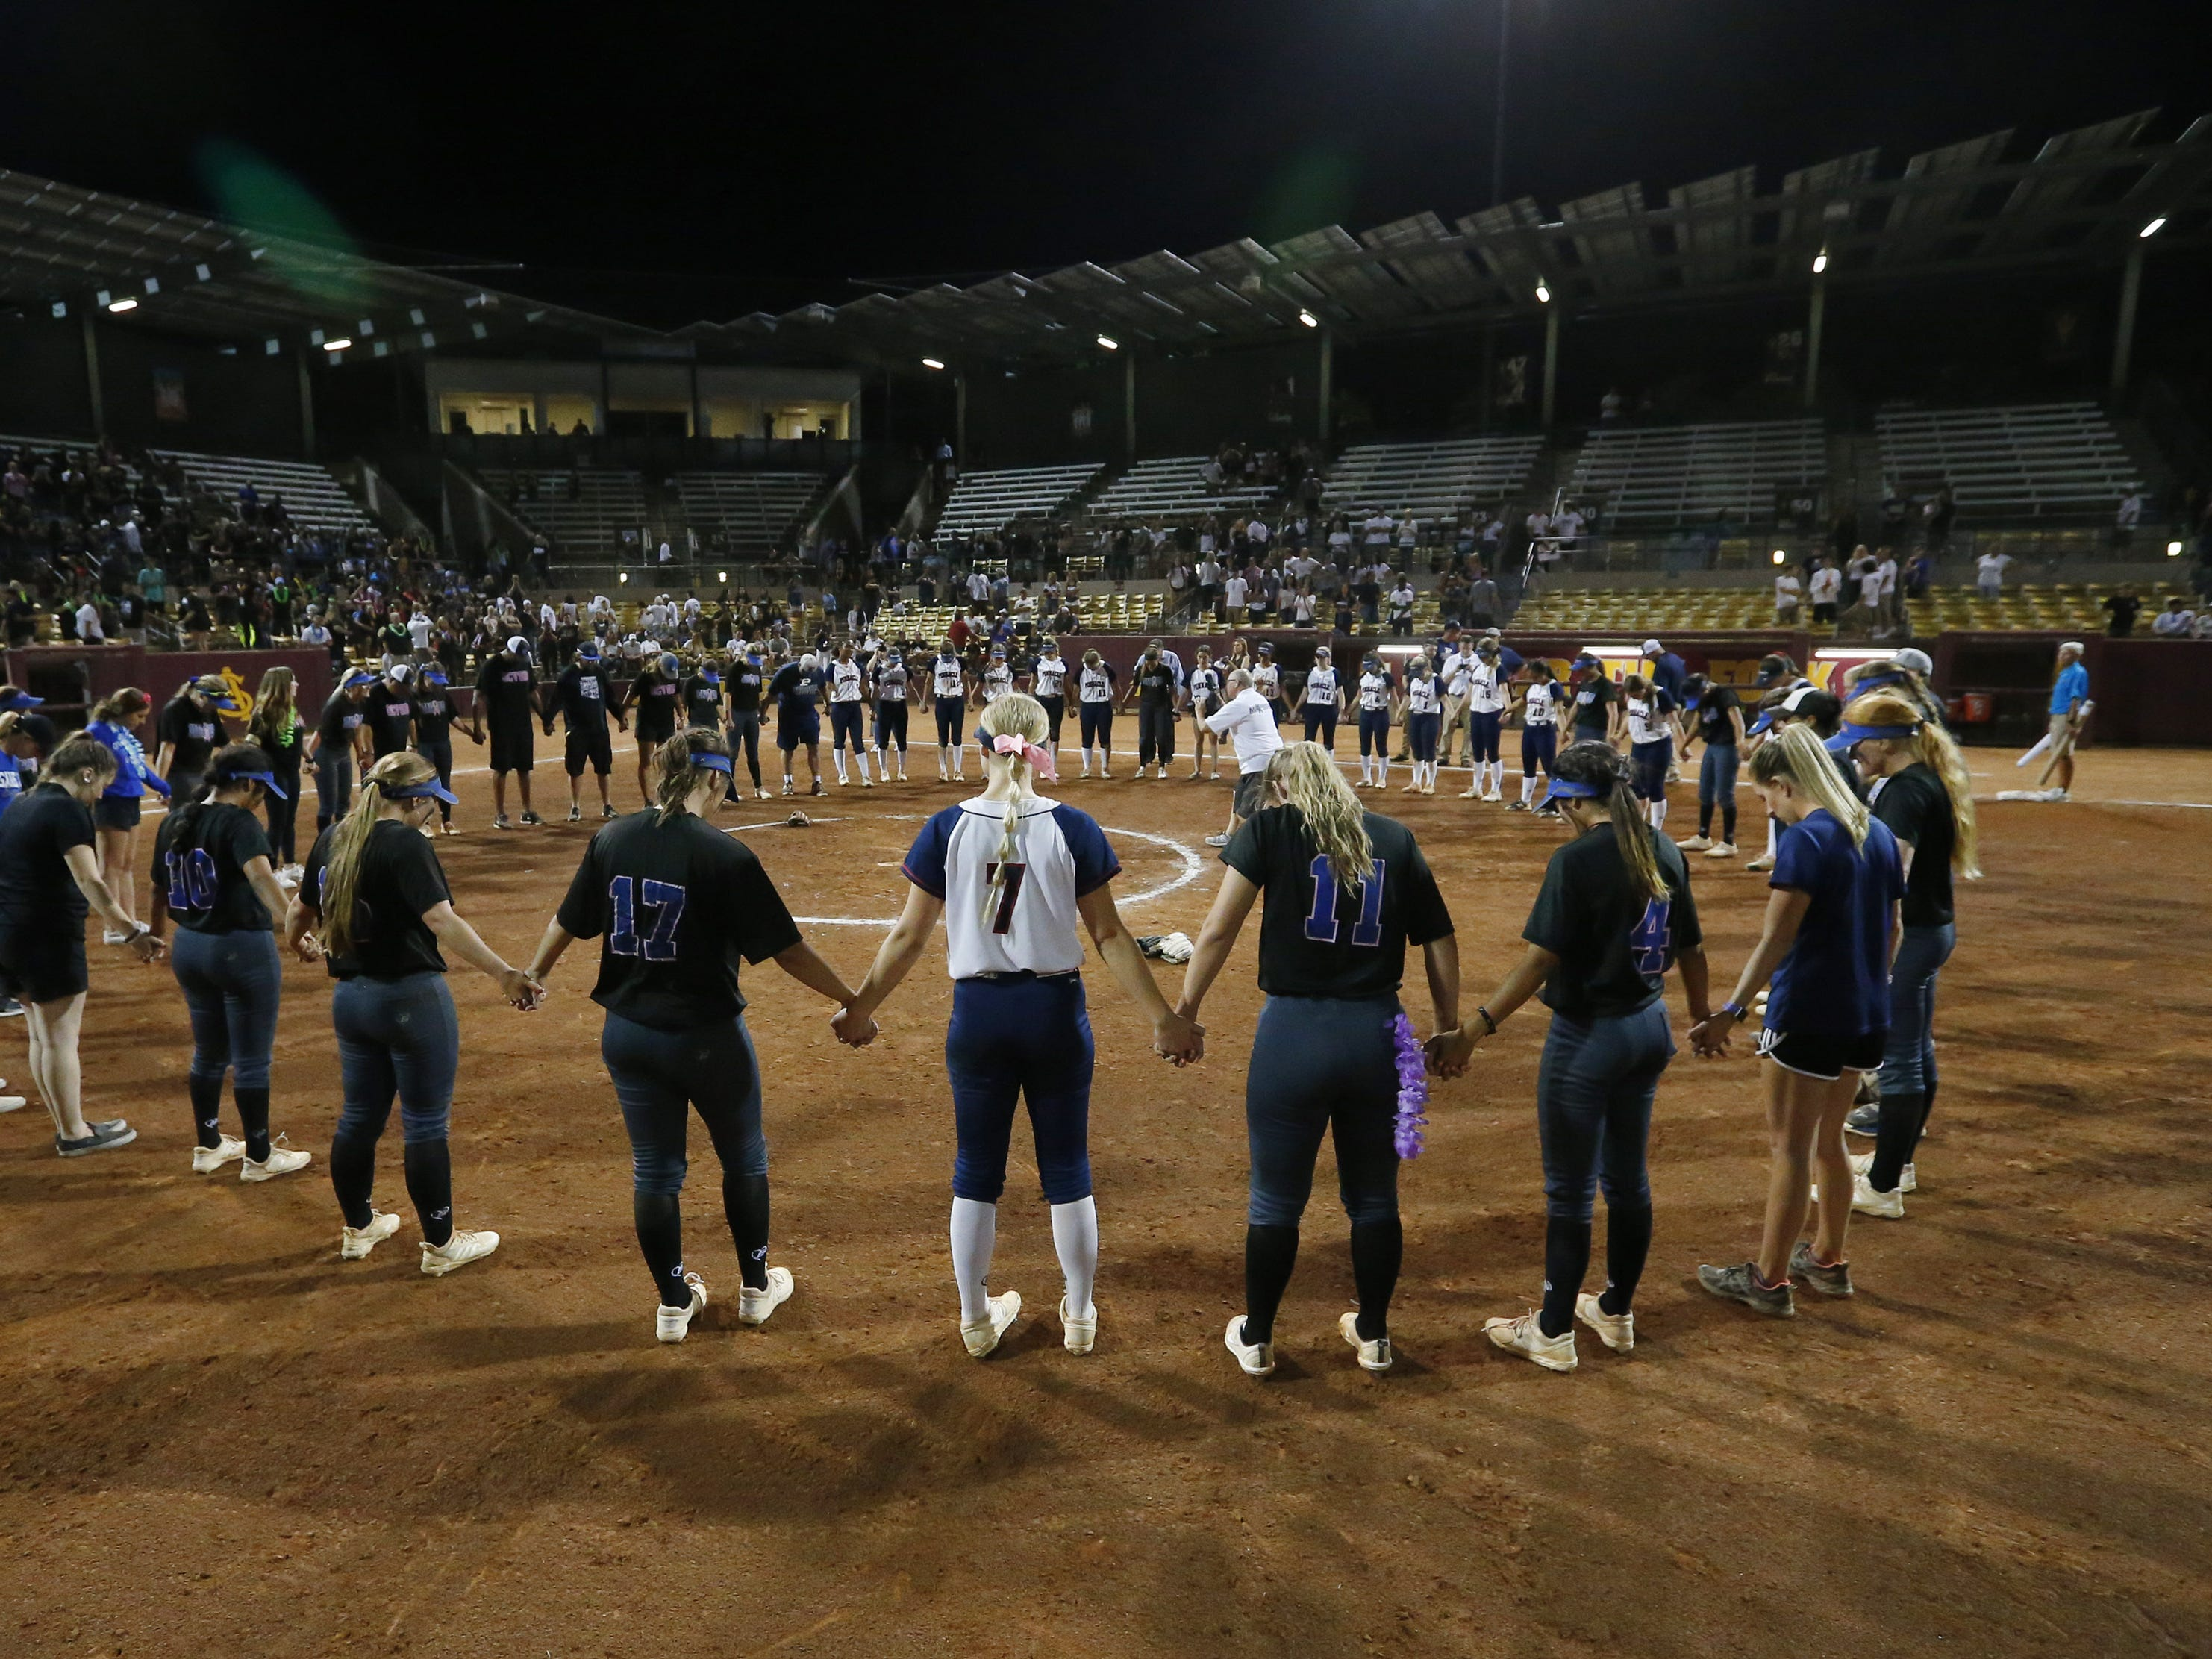 Sandra Day O'Connor an Pinnacle players pray together after the 6A State Softball Championship in Tempe, Ariz. May 13, 2019. Sandra Day O'Connor won 6-4.